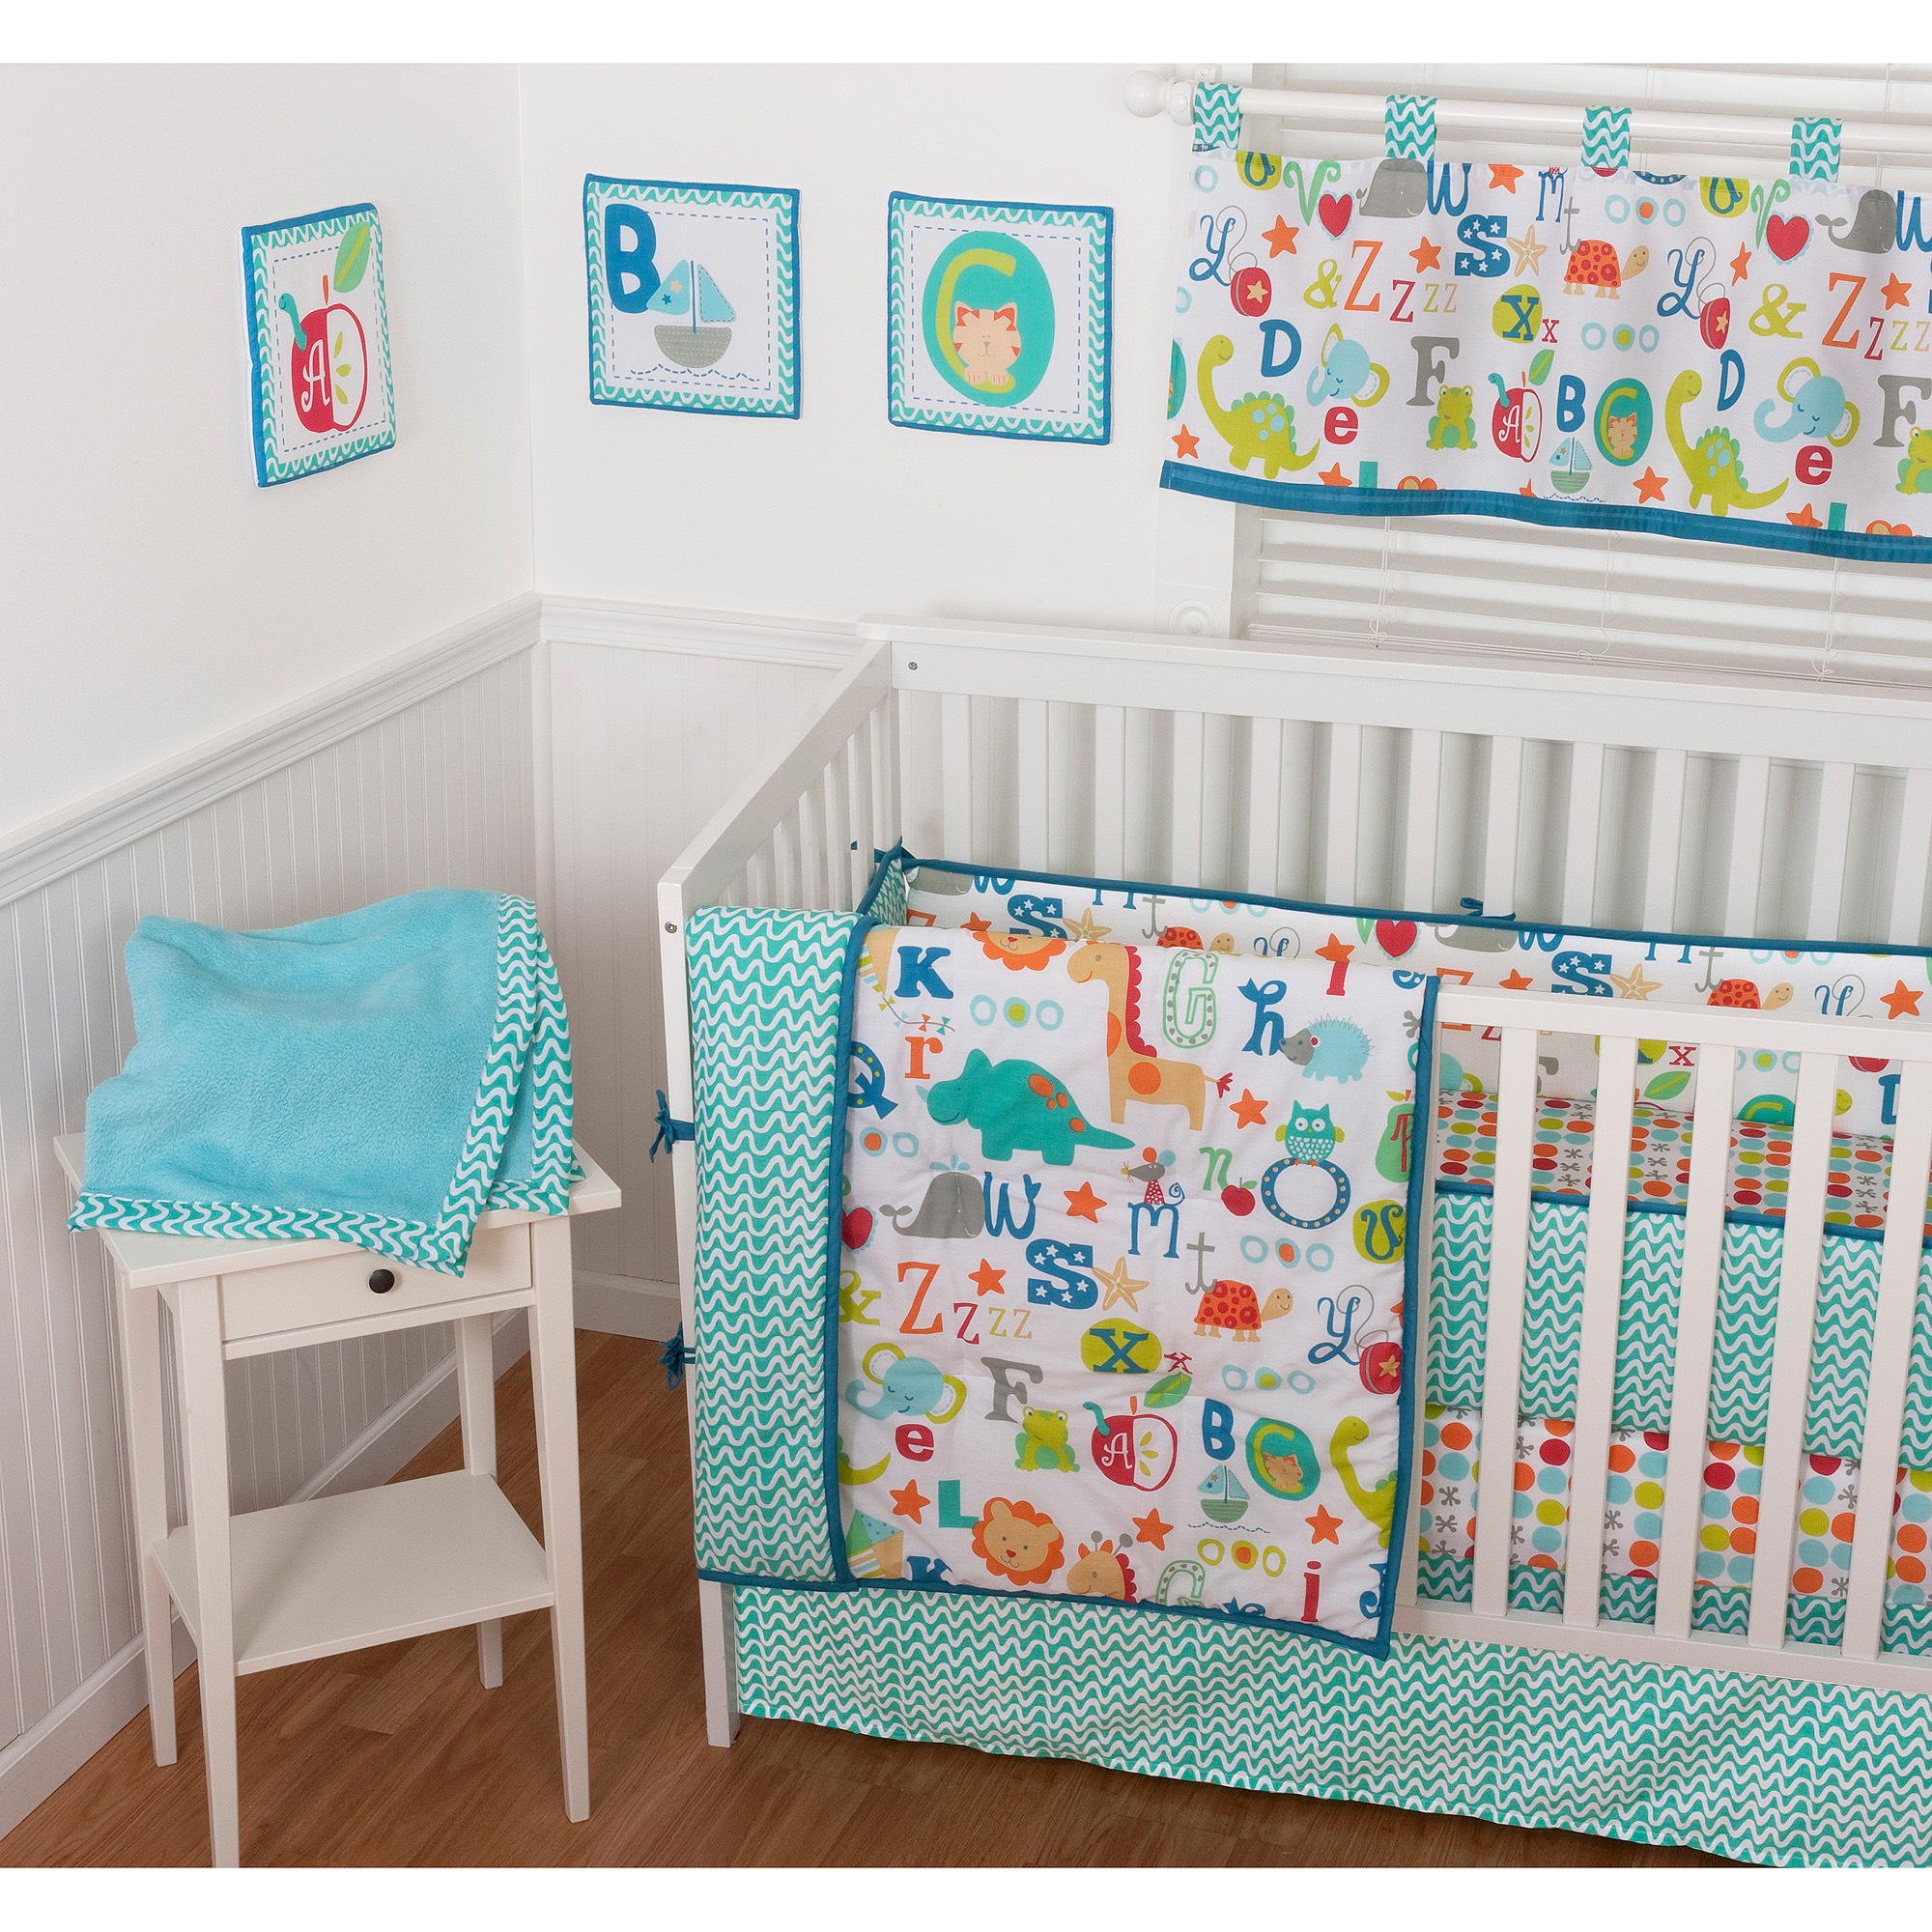 Sumersault Abc All Over 9 Piece Nursery In A Bag Crib Bedding Set